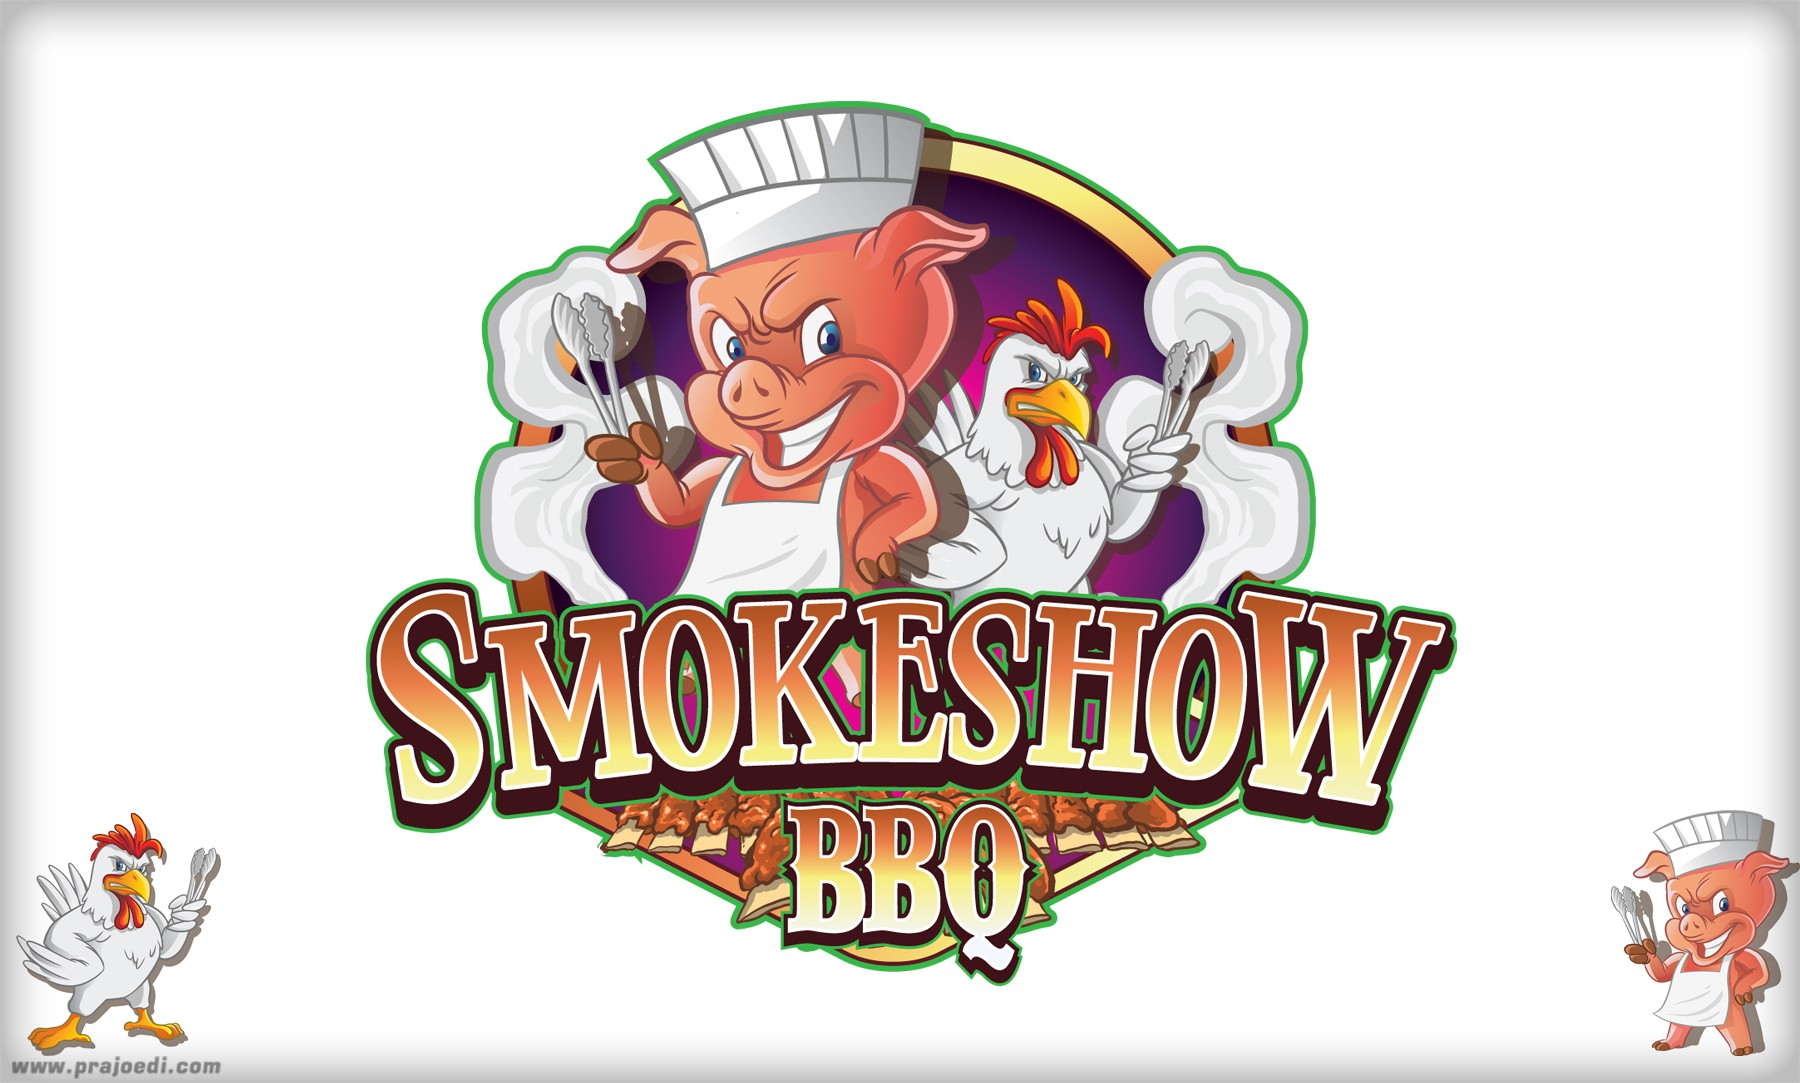 New logo wanted for SmokeShow BBQ